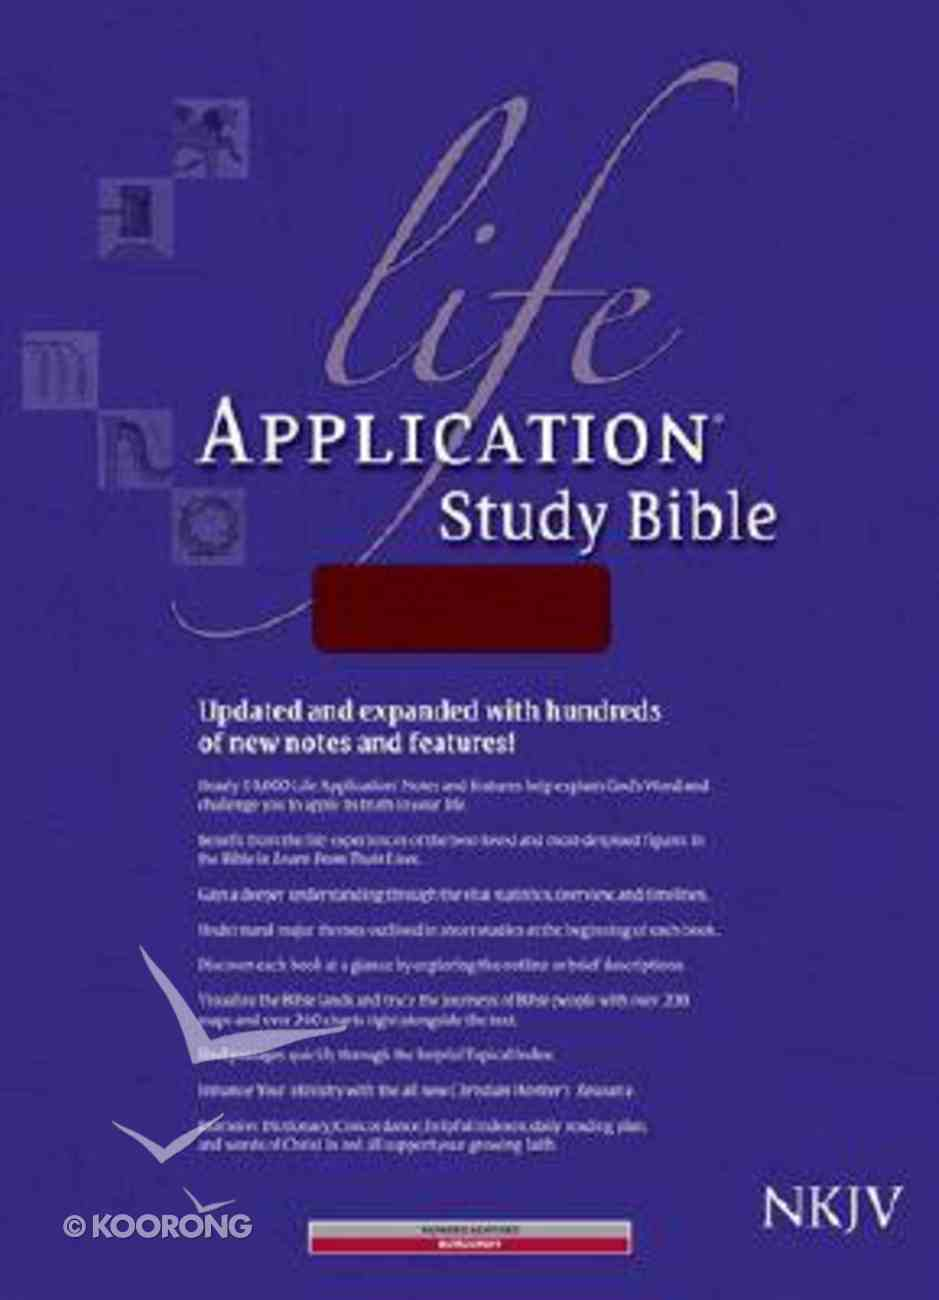 NKJV Life Application Study Bible 2nd Edition Burgundy Indexed (Red Letter Edition) Bonded Leather